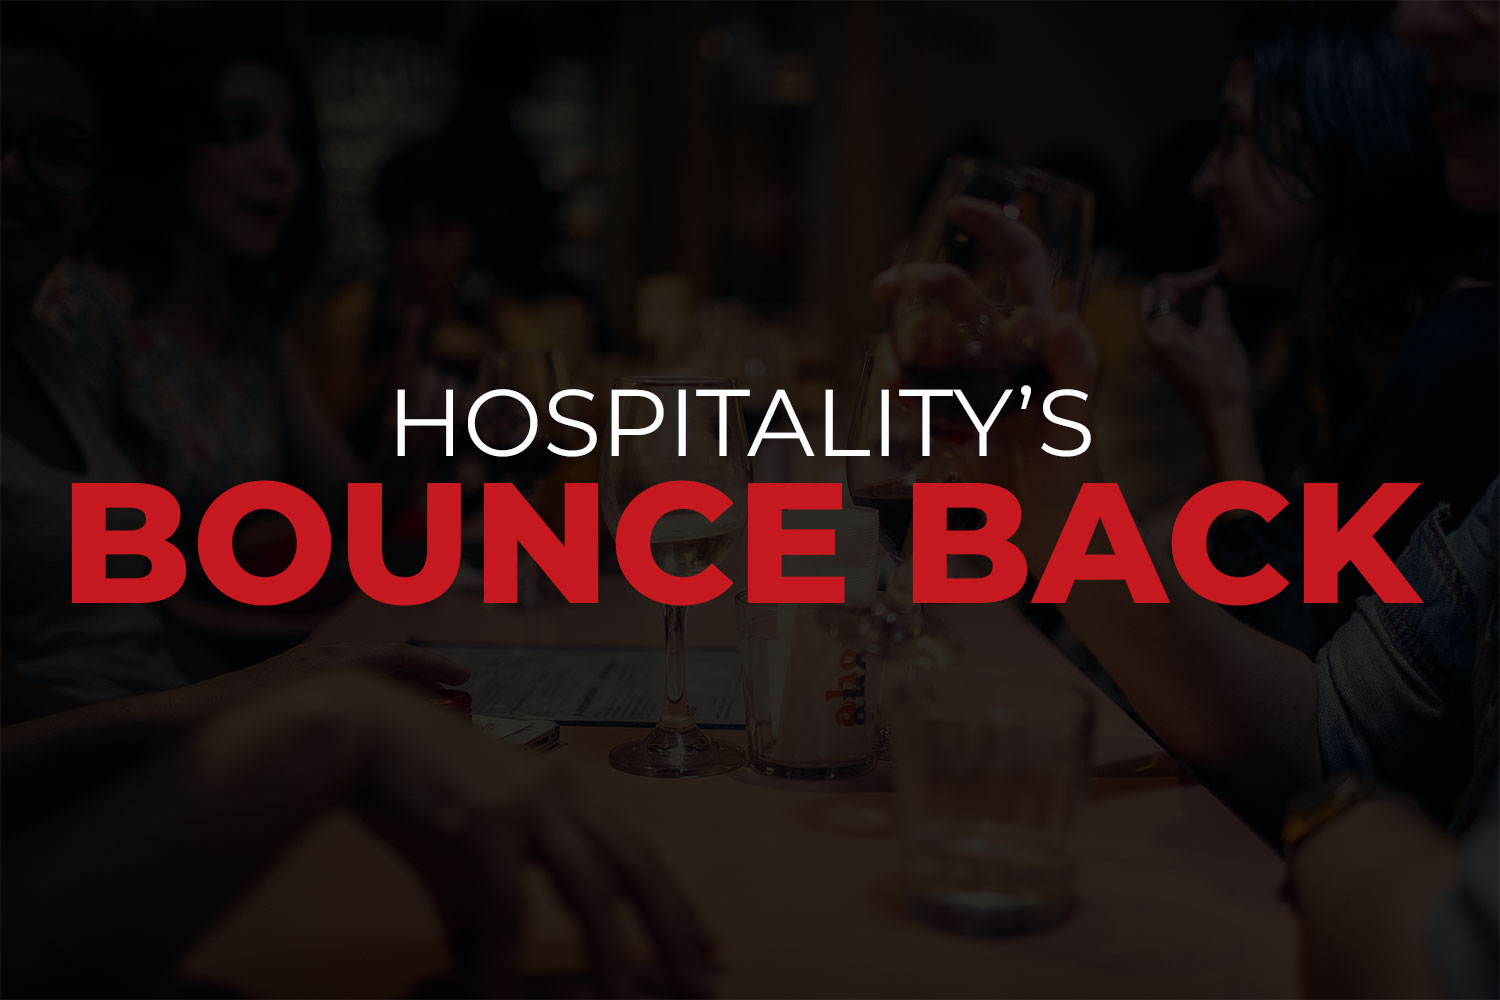 Hospitality's bounce back - featured